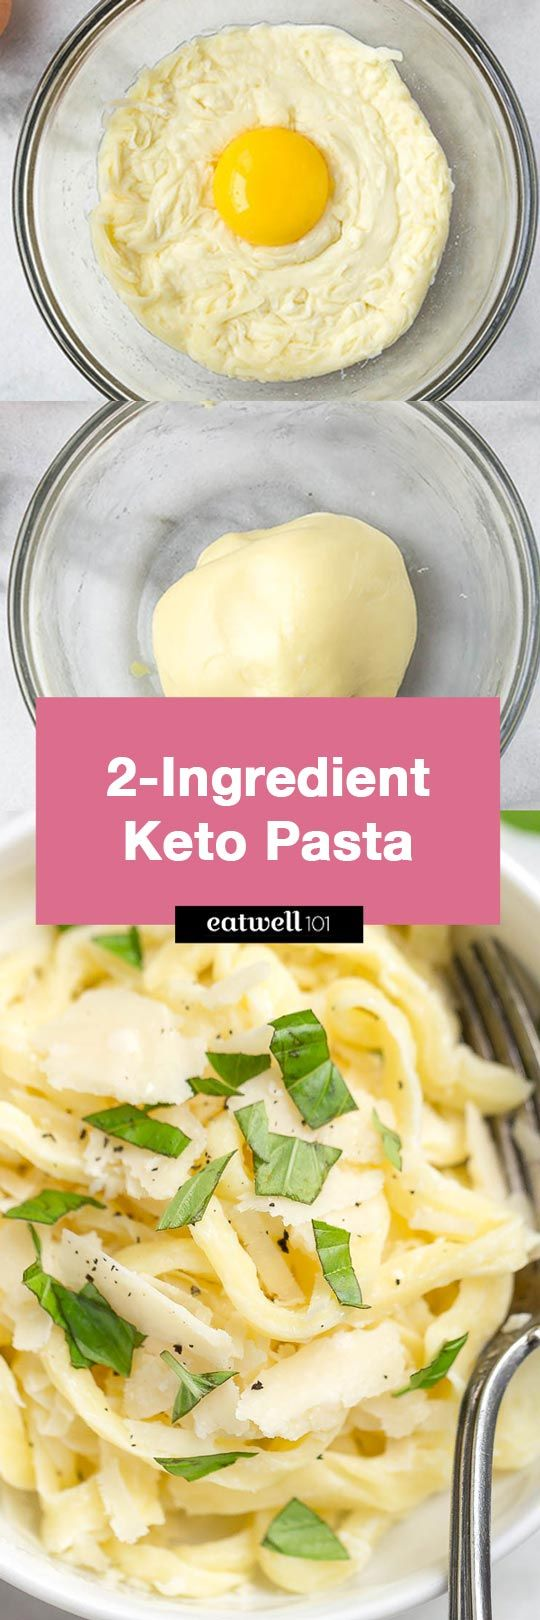 2-Ingredient Keto / Low Carb Pasta Noodles